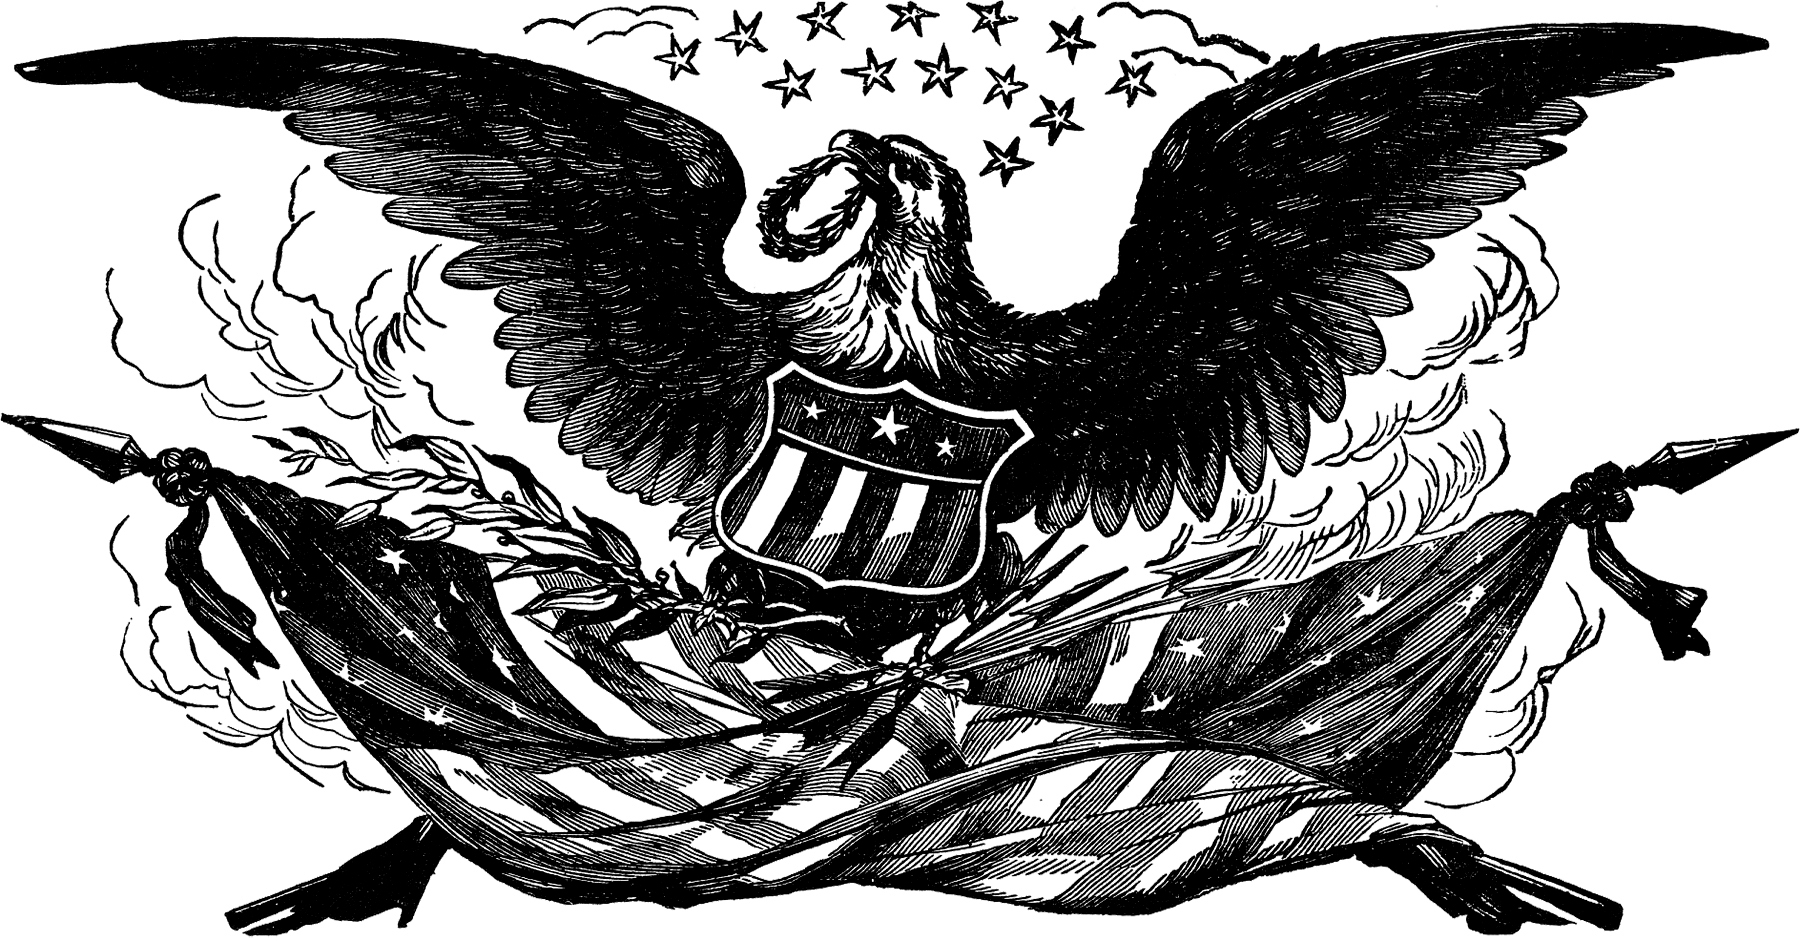 Line Art Usa : Vintage bald eagle with flag image the graphics fairy